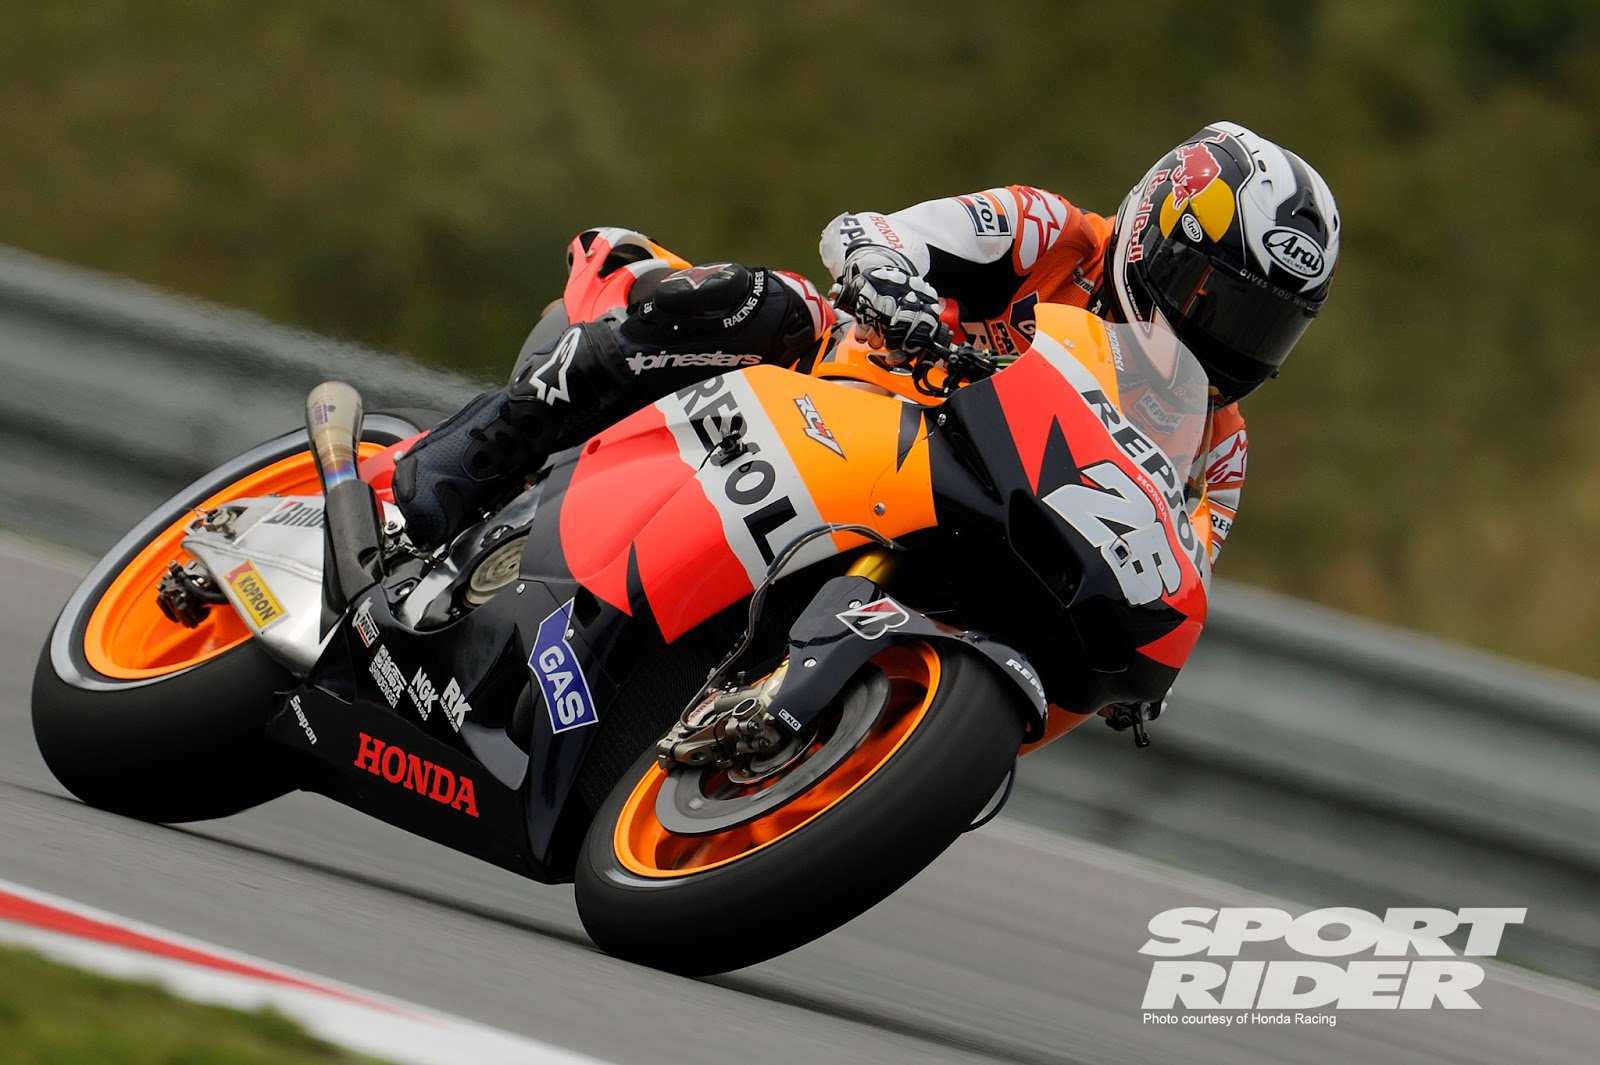 pedrosa motogp wallpaper hd - photo #4